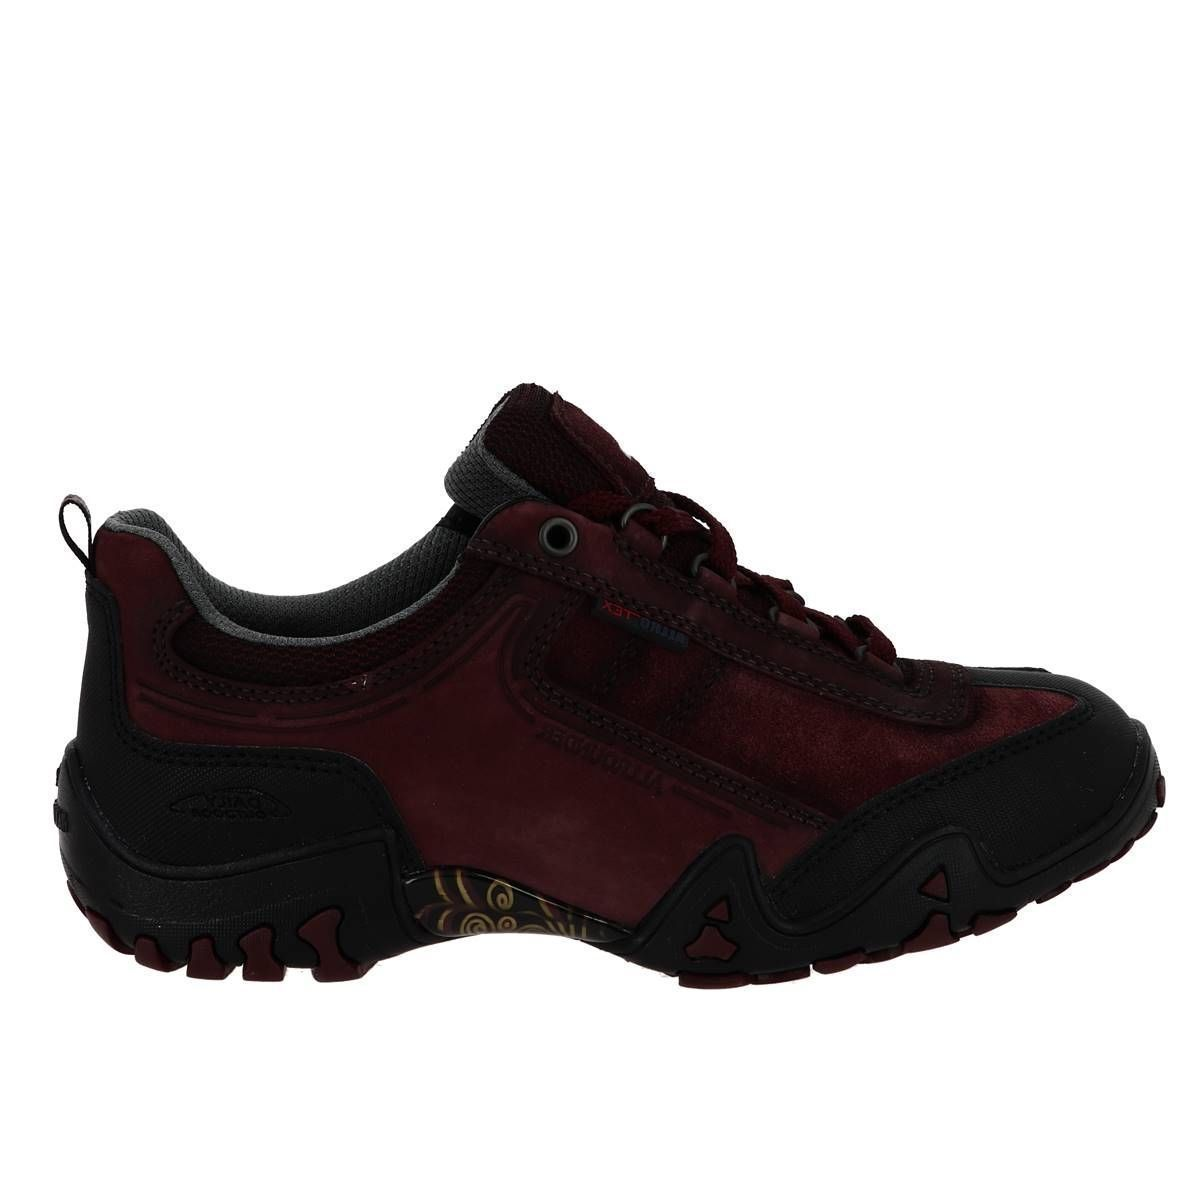 CTAS LUGGED HI FINA - TEX:BORDEAUX/CUIR/GORE-TEX/CAOUTCHOUC/Bordeaux